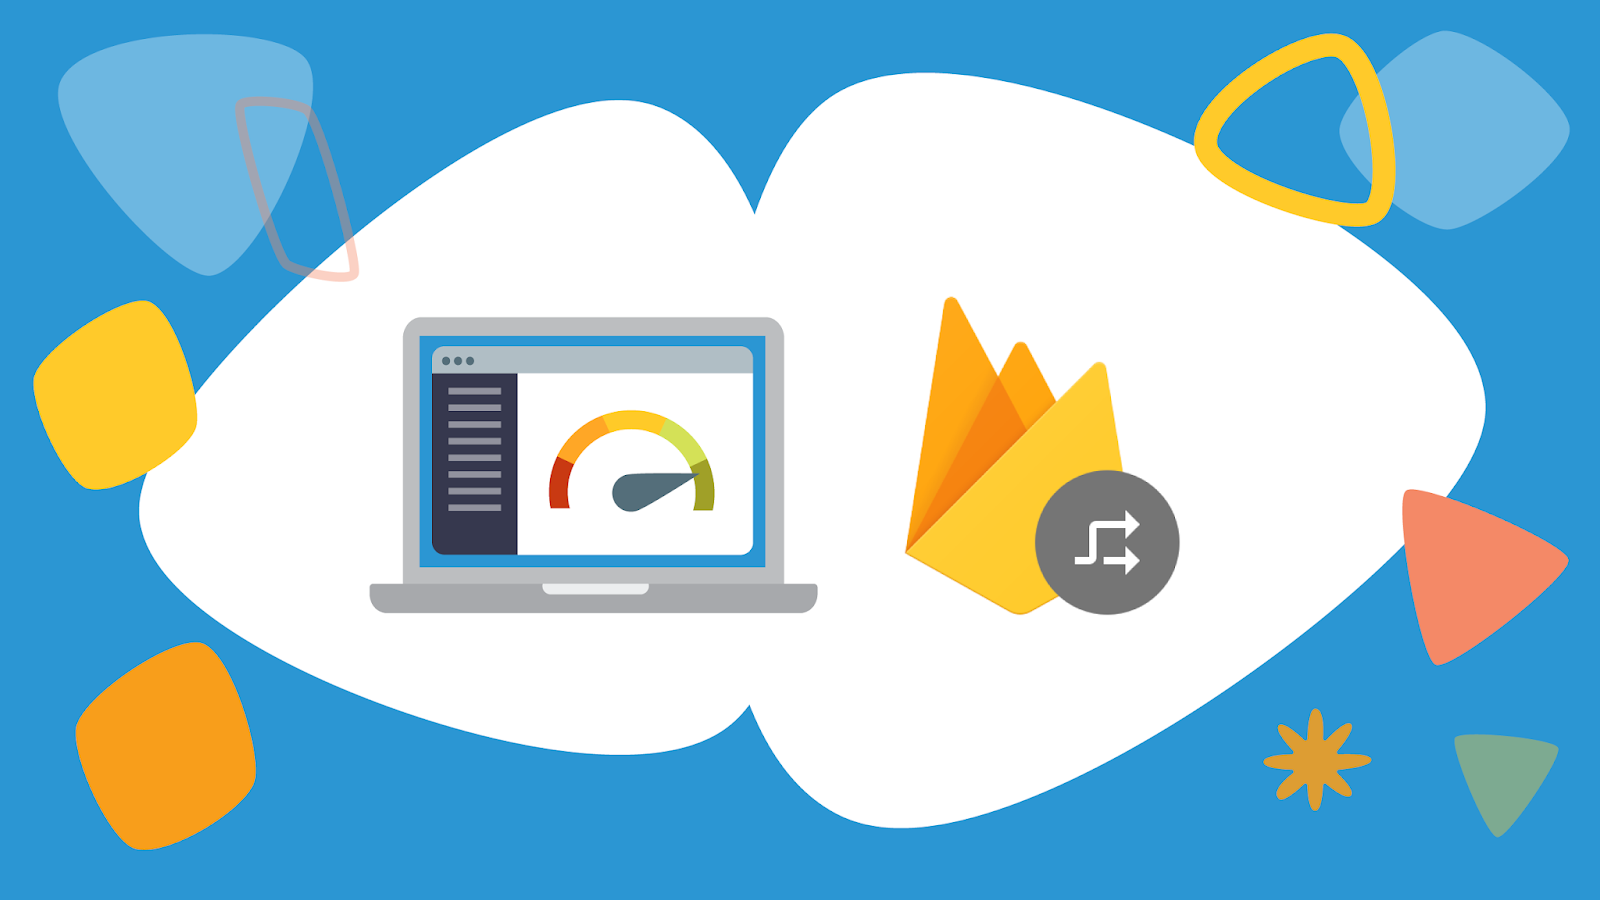 Remote config illustration with Firebase logo